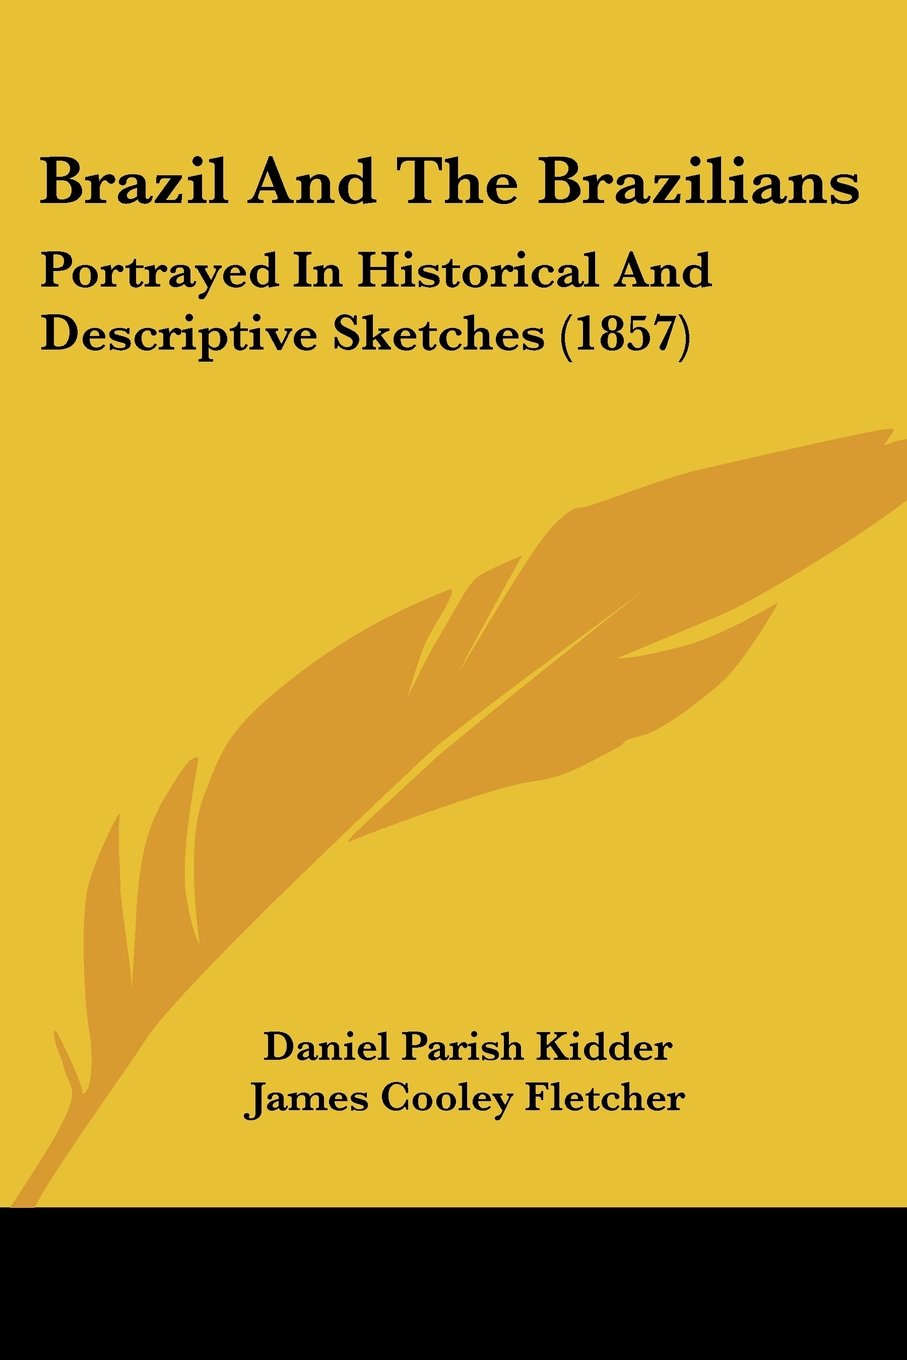 Brazil And The Brazilians: Portrayed In Historical And Descriptive Sketches (1857) ebook